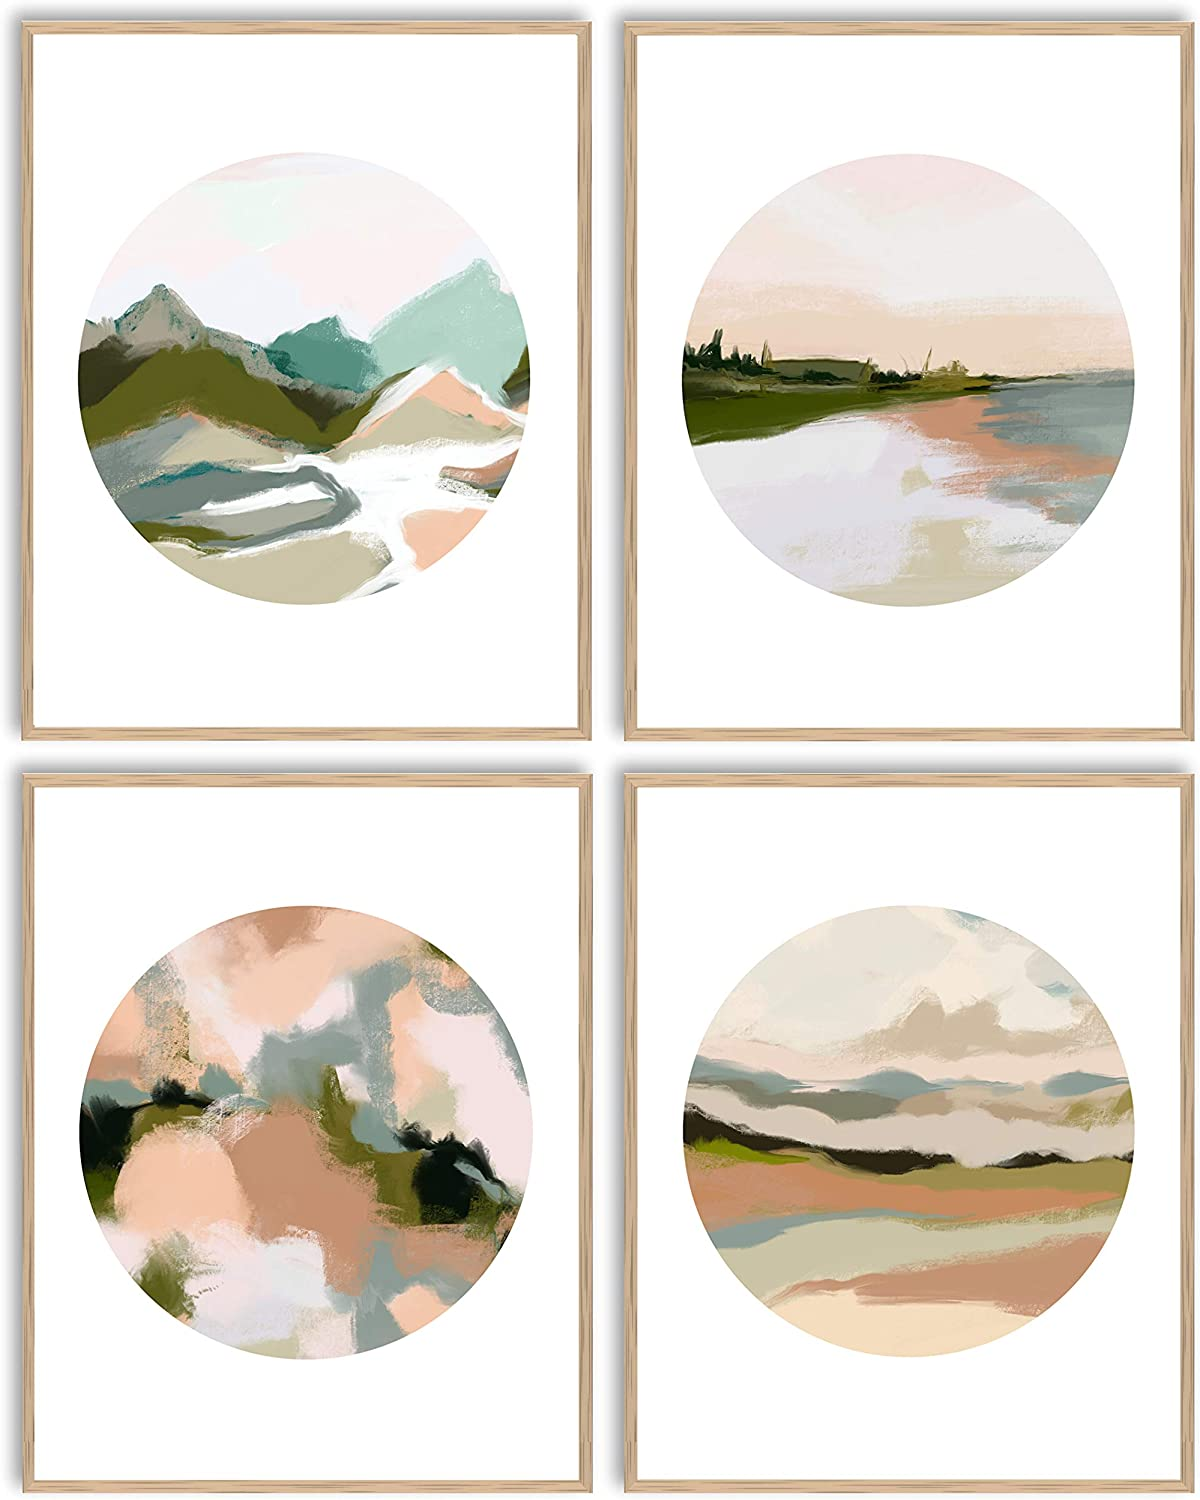 Printsmo Neutral Earthtones Landscape Art Print Set of 4, Modern Abstract and Minimalist Art Prints for Home Decor, Boho Style Wall Art Poster Set, 11x14 Inches Each, Unframed